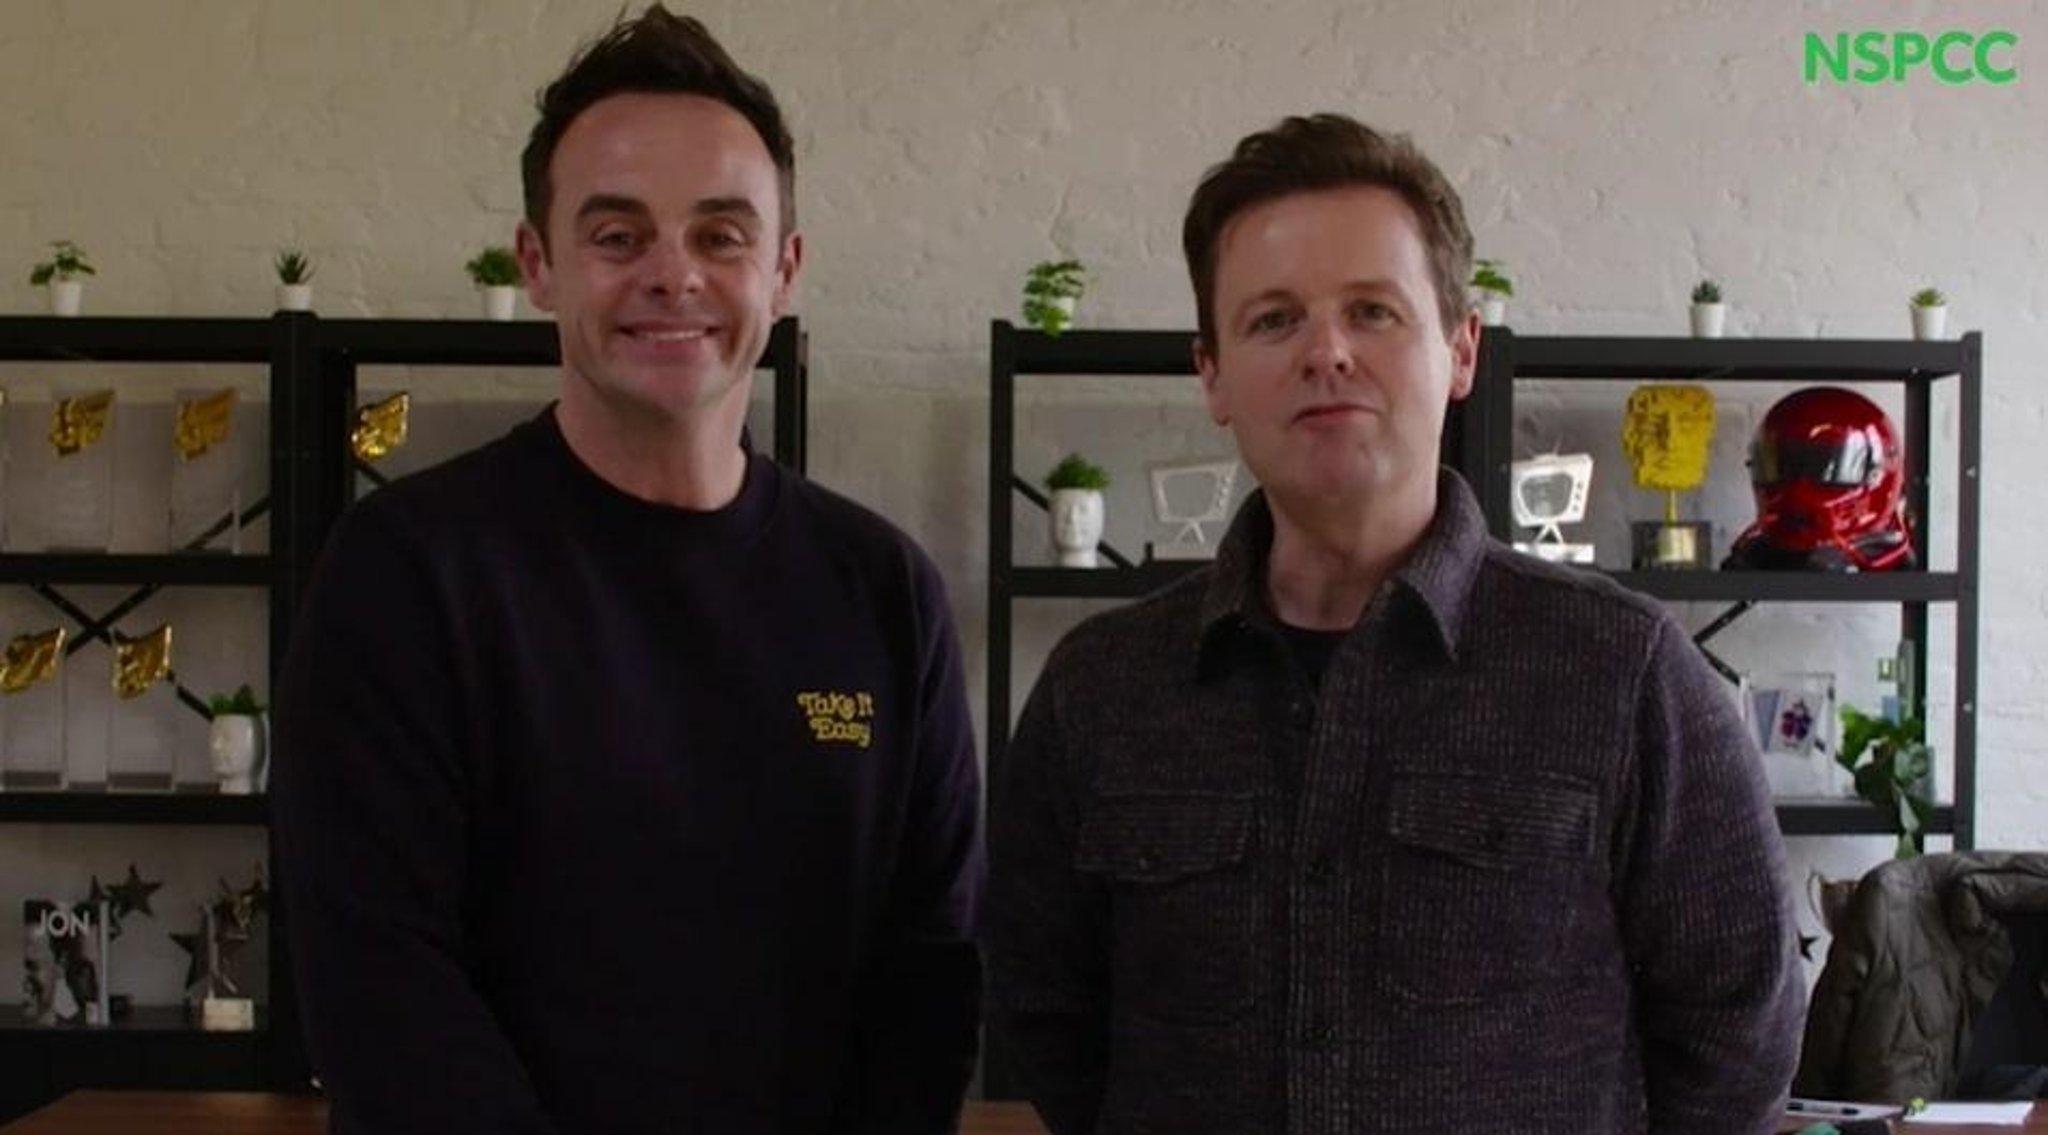 Primary schools in Scotland are being encouraged to sign up to an Ant and Dec asembly on children's rights